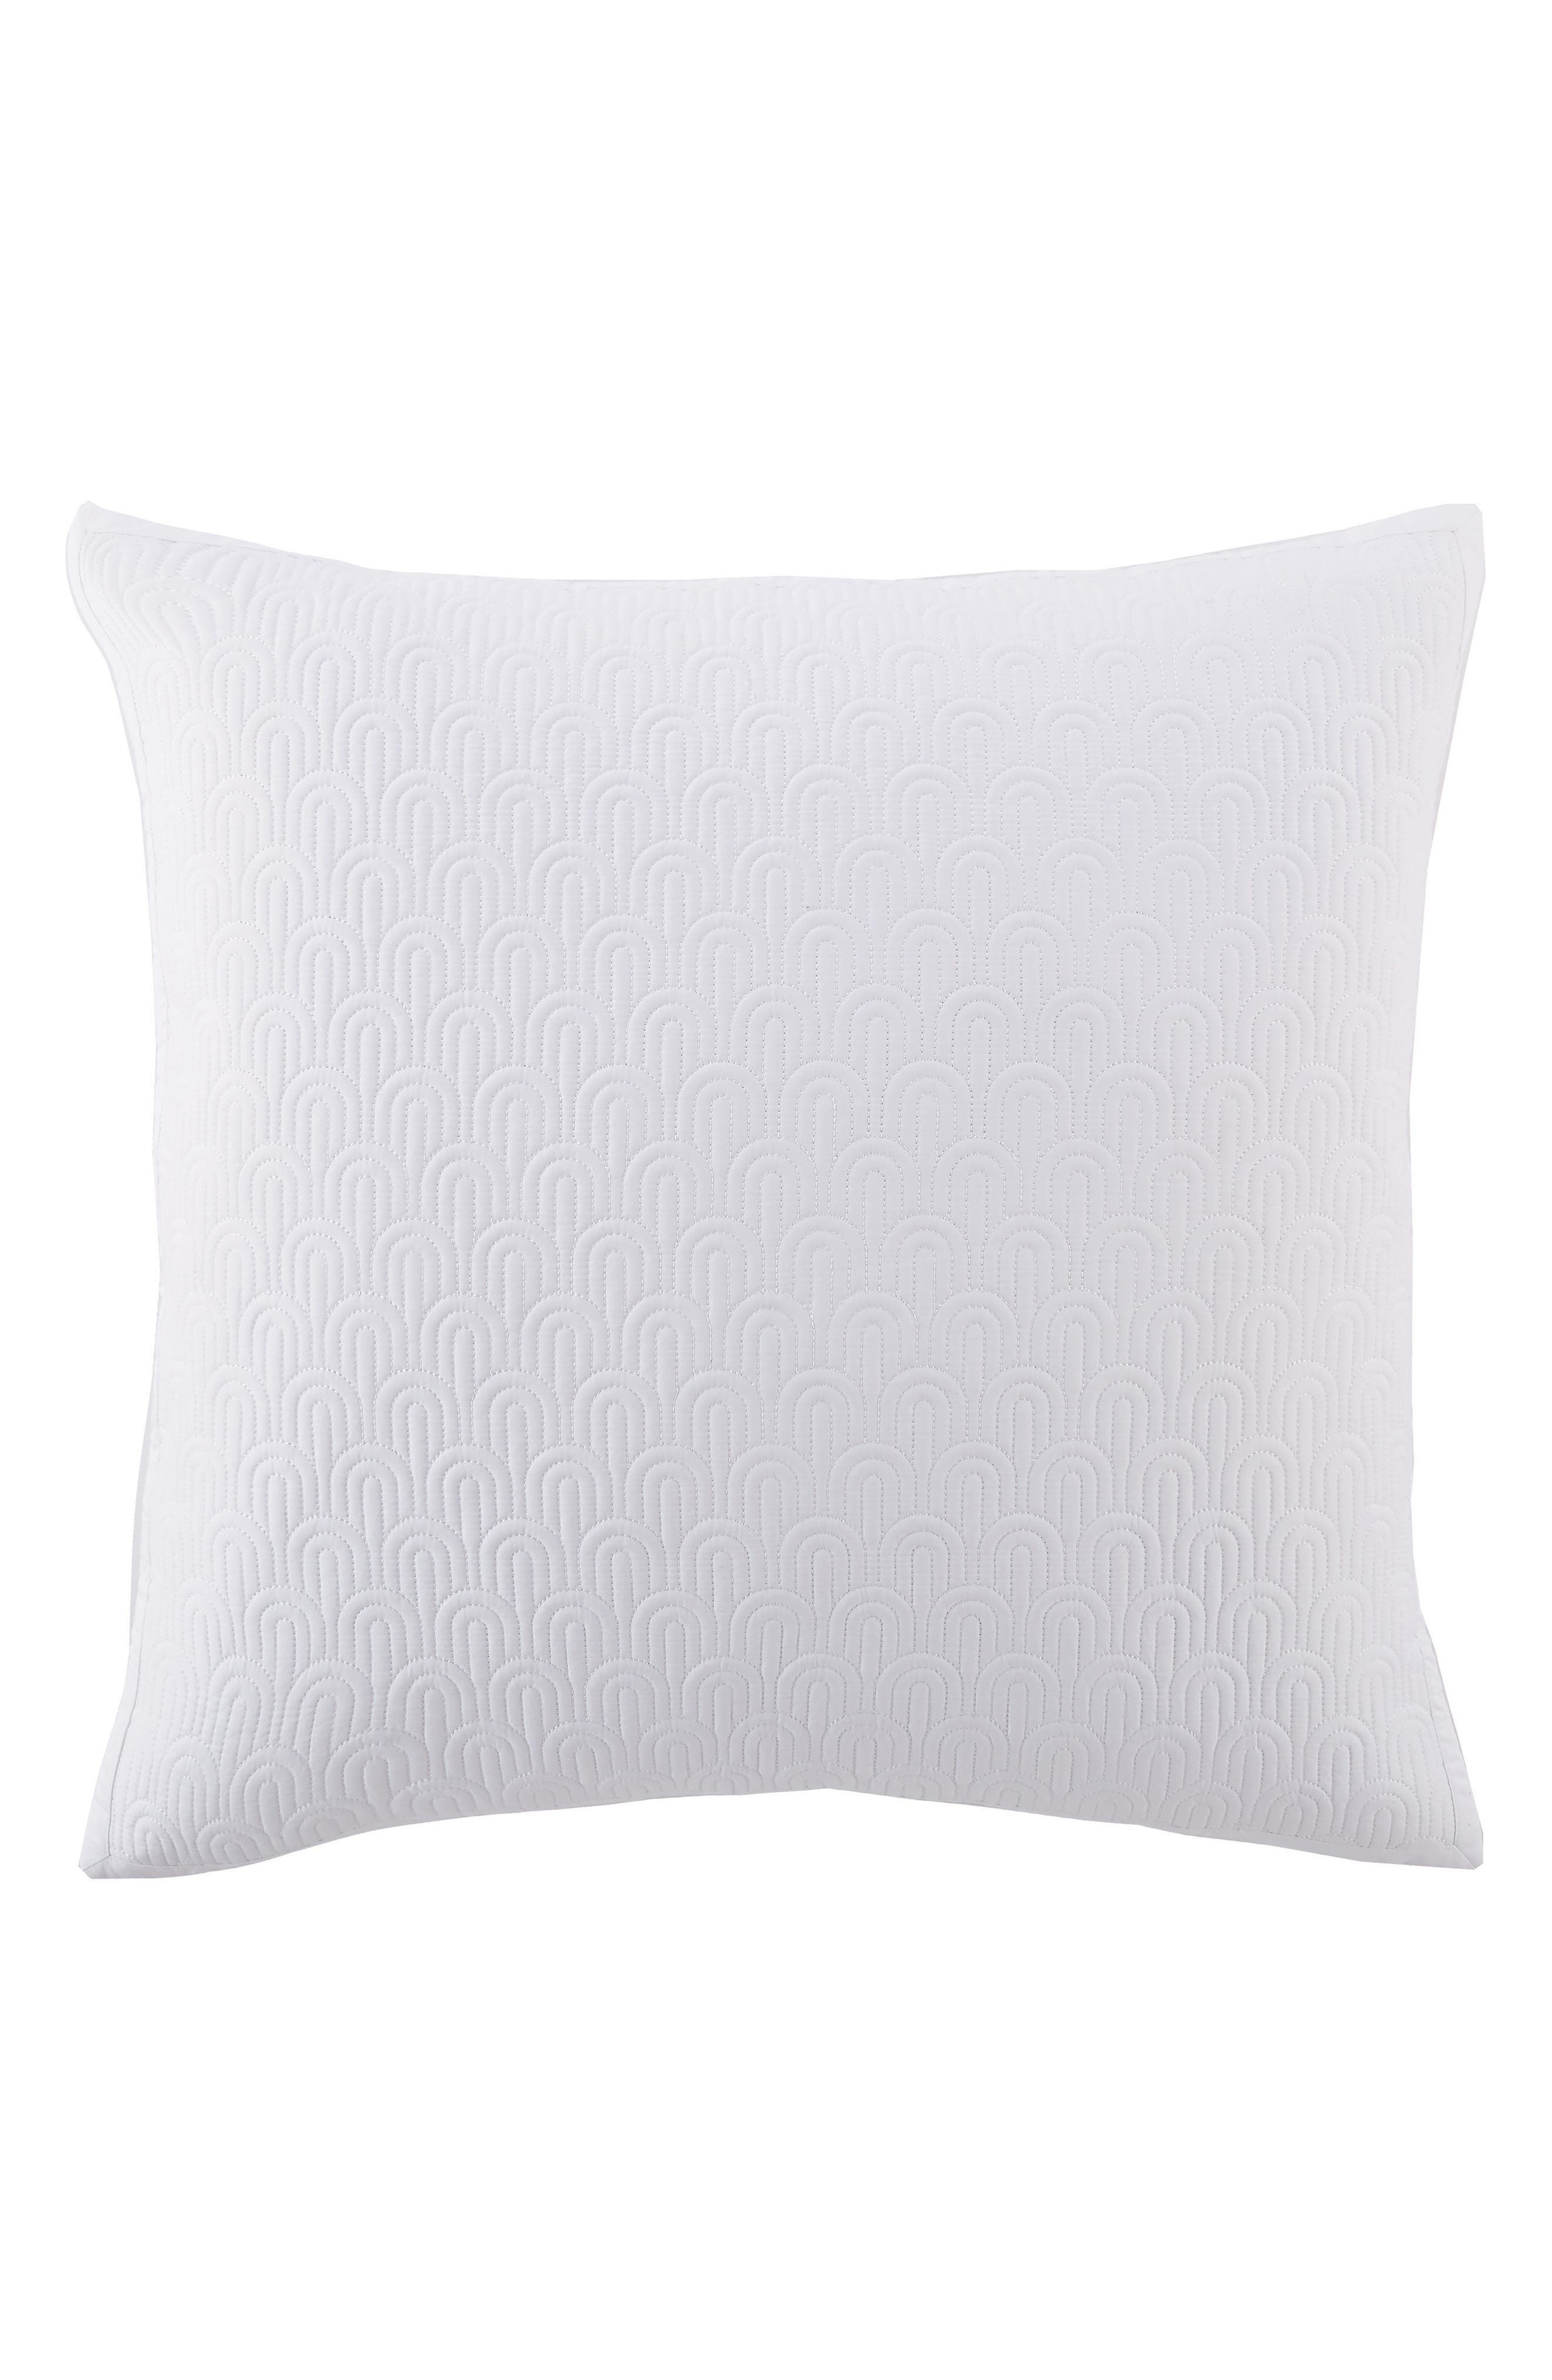 Quilted Euro Sham,                             Main thumbnail 1, color,                             WHITE